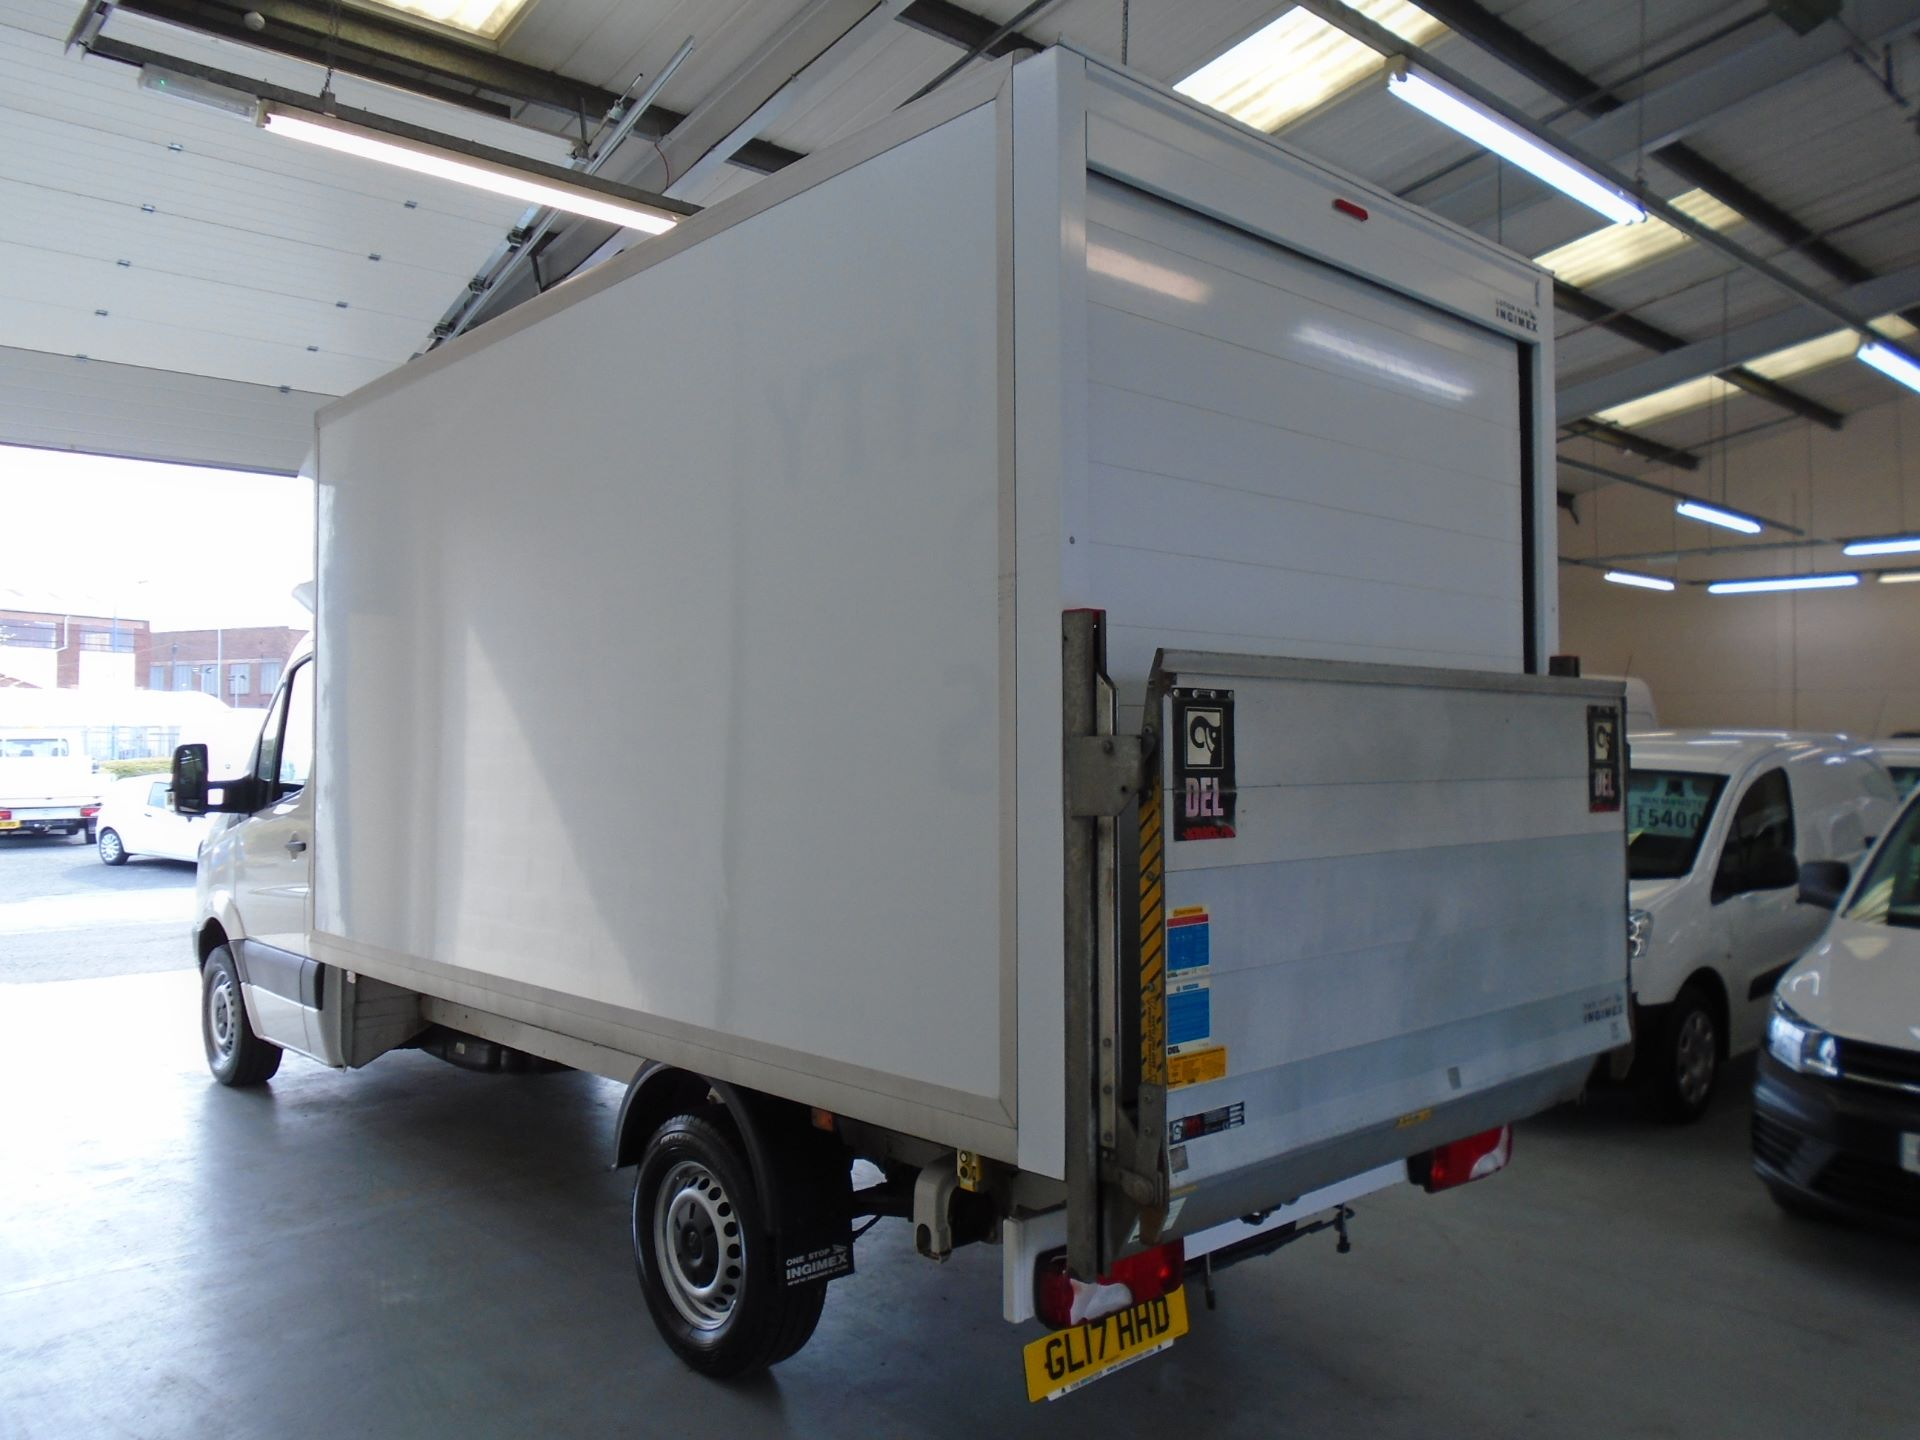 2017 Volkswagen Crafter 2.0 Tdi Bmt 140Ps LWB Luton Tail-Lift (GL17HHD) Image 8